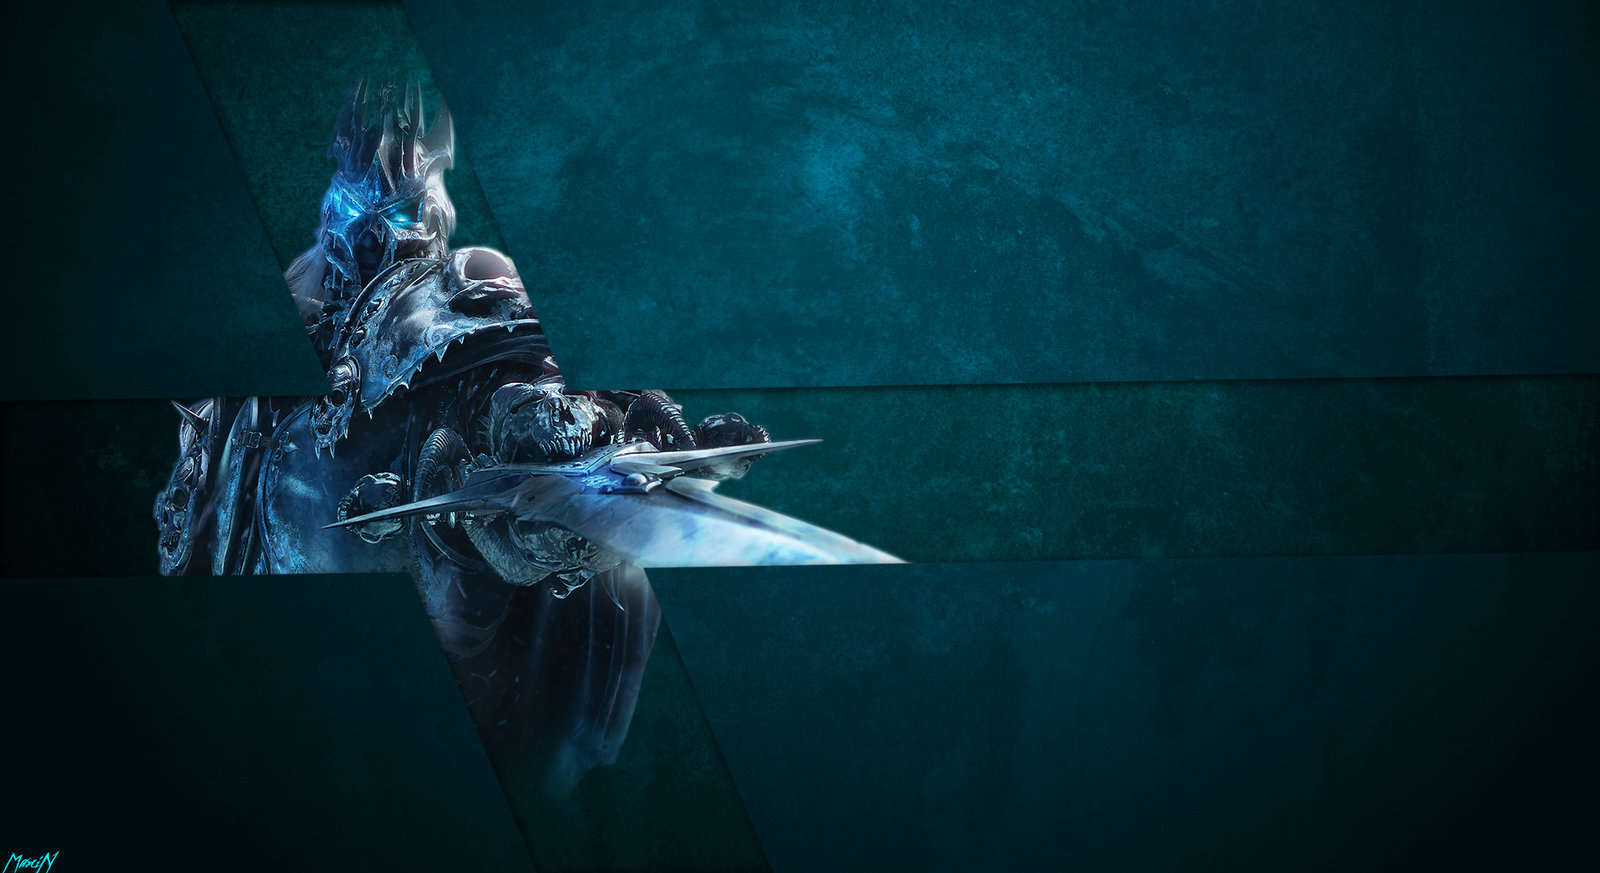 Fantasy Art Warcraft Arthas Lich King Wallpapers Hd